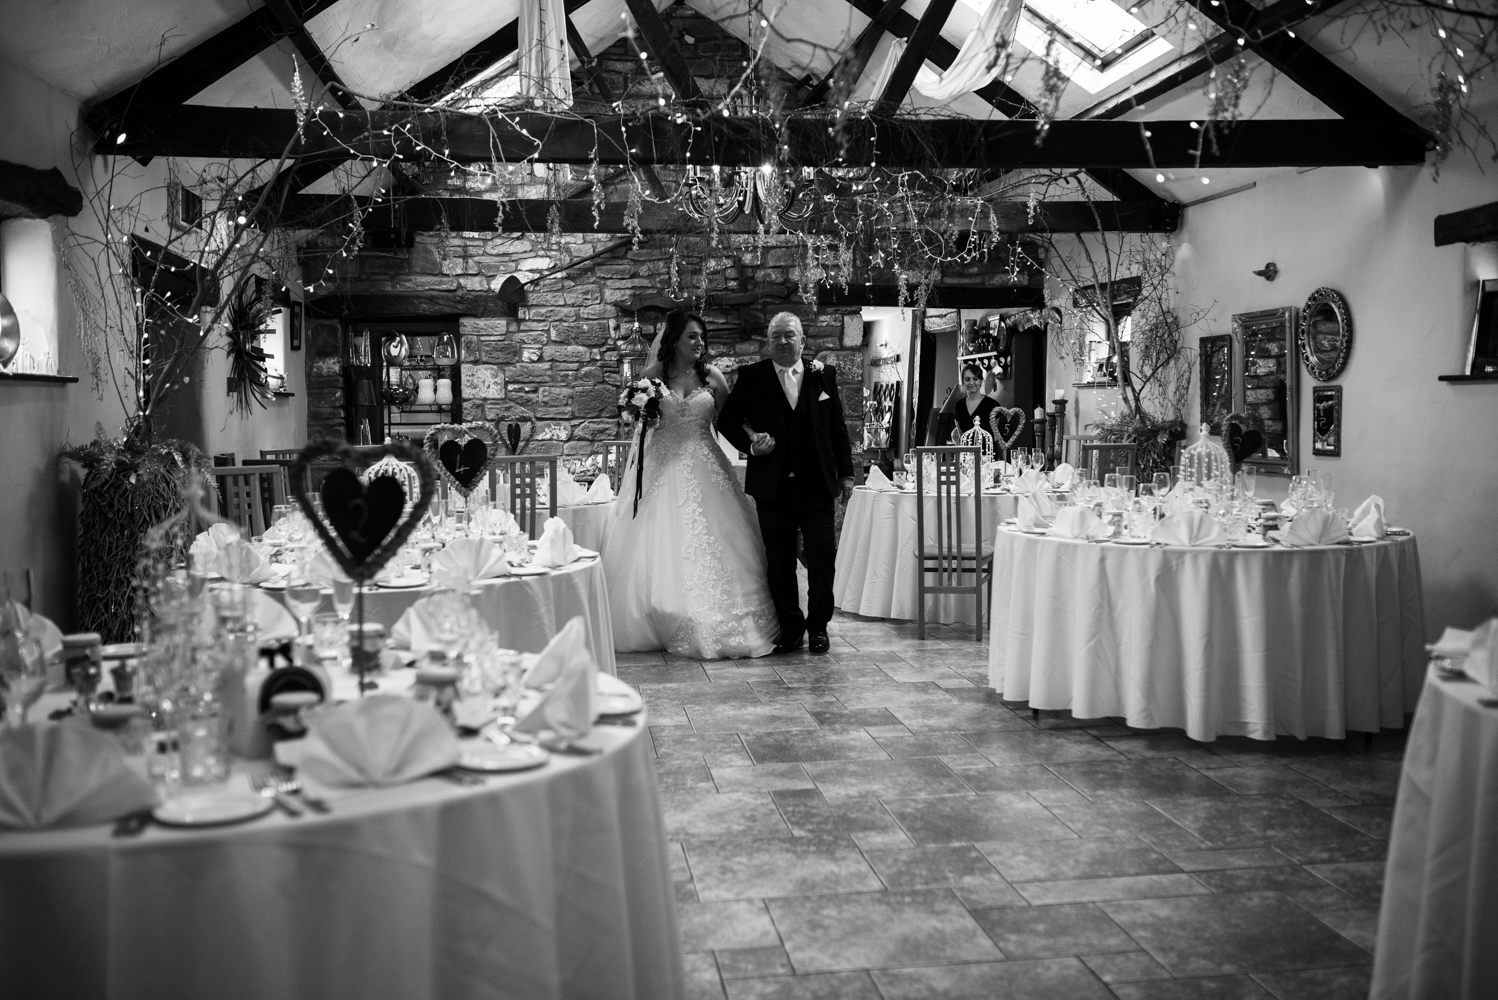 Black and white photo of the bride and her father walking towards the registrars